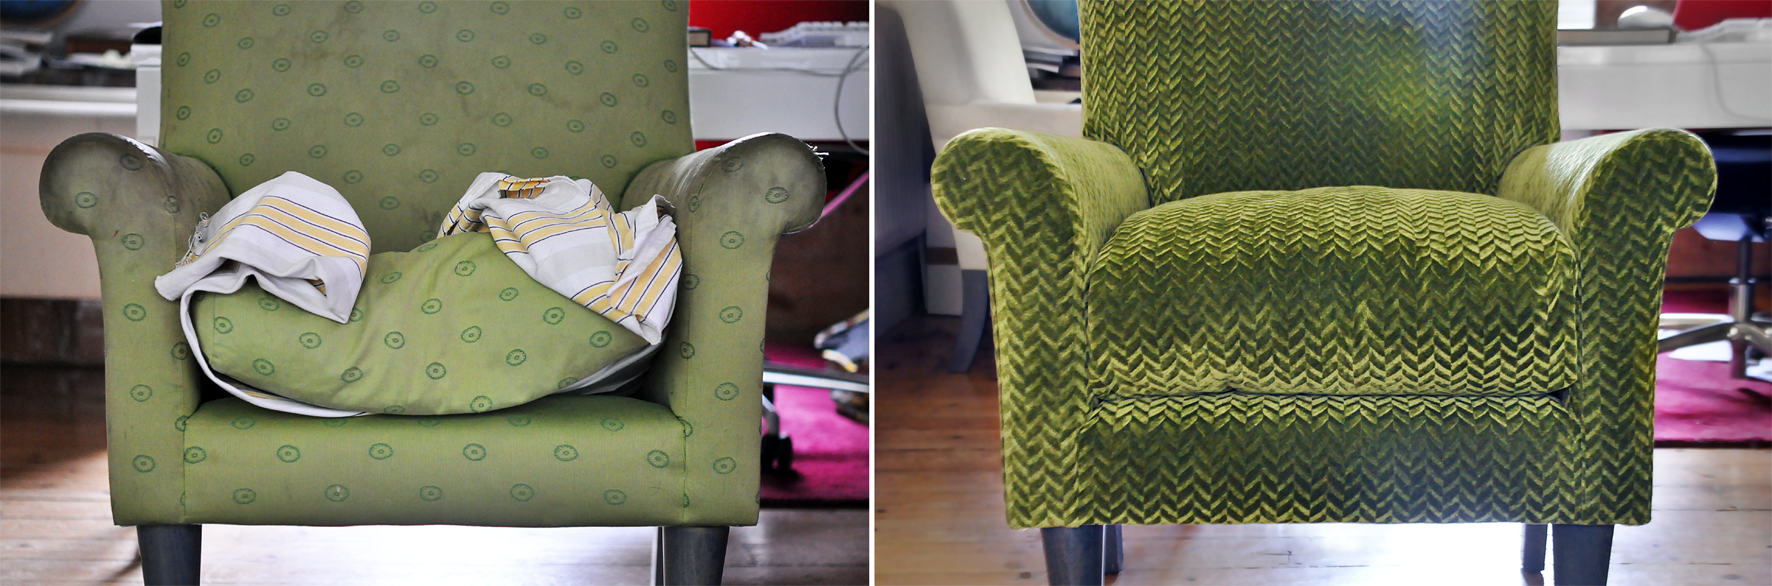 Reupholstery: Before and After. Dougie Scott